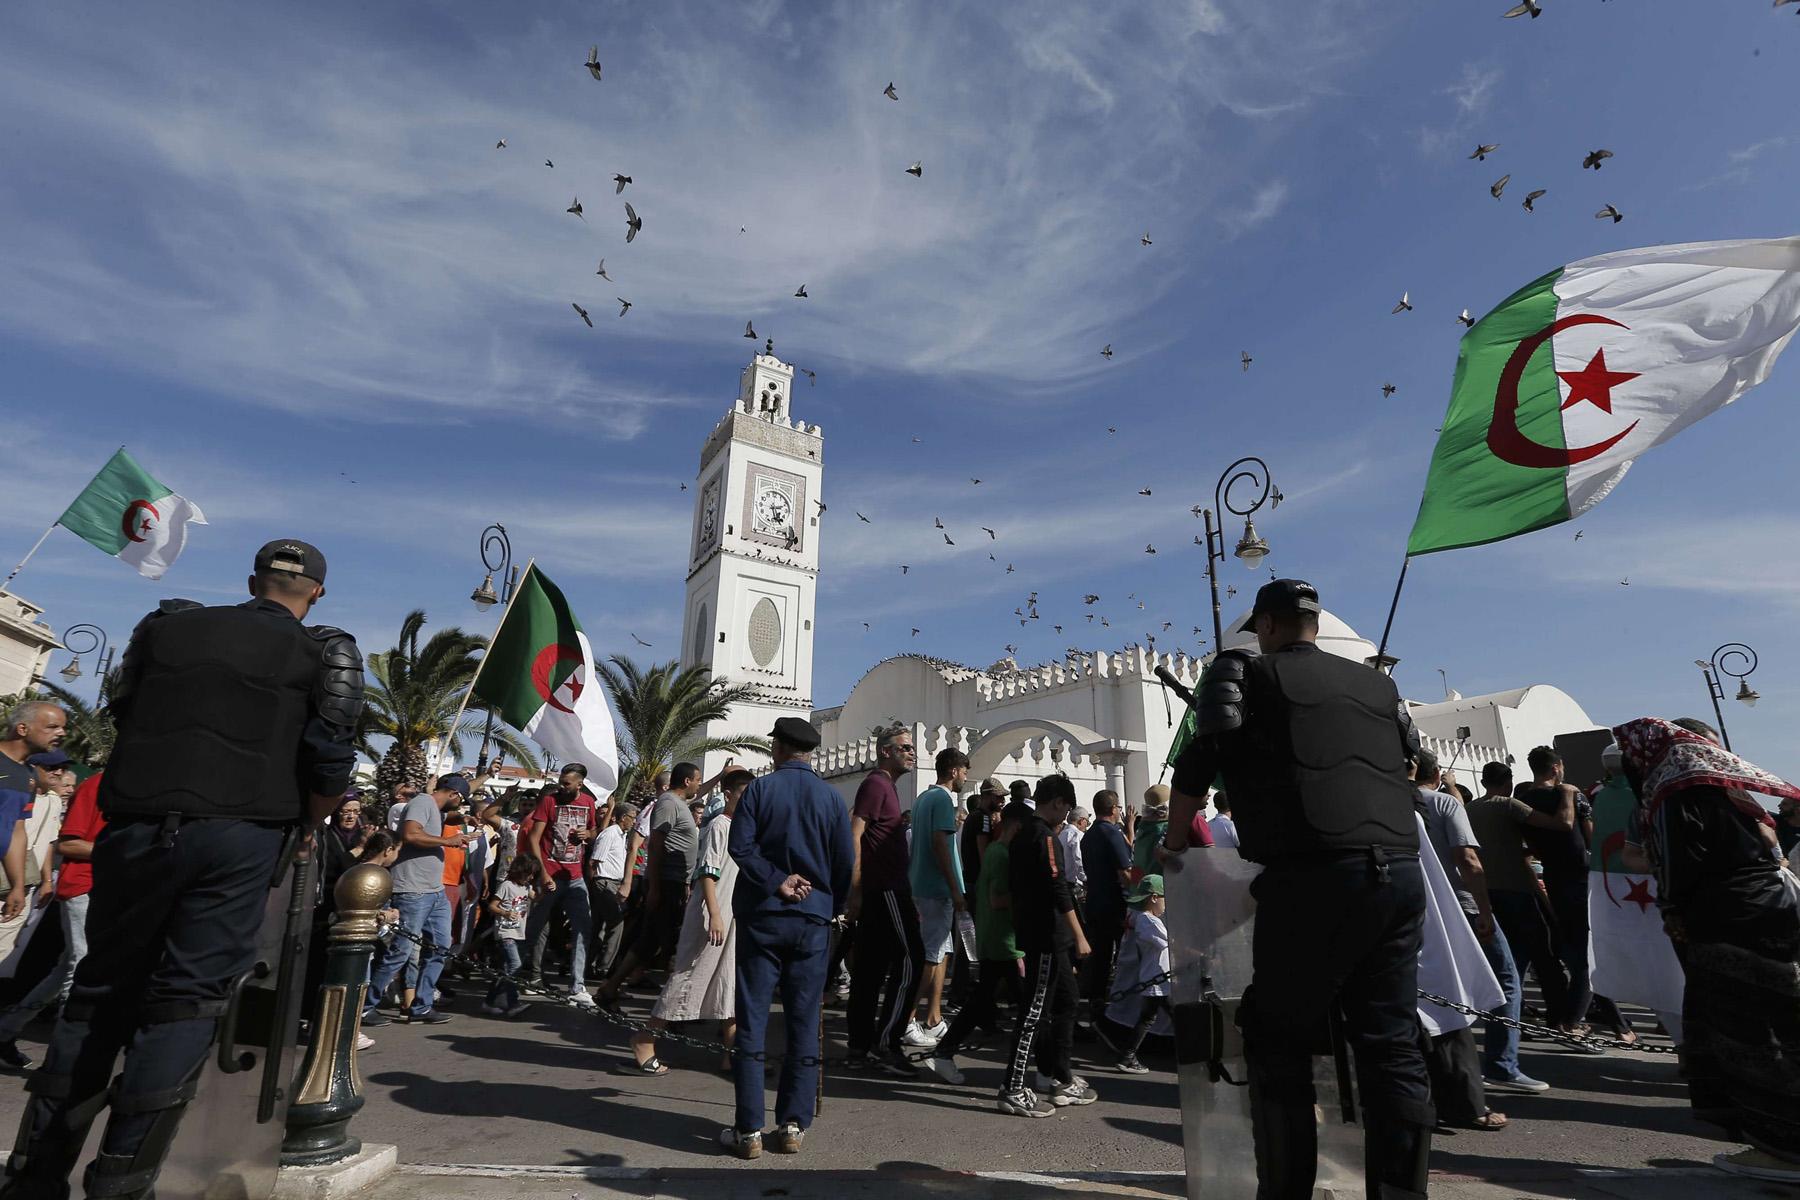 Algerians take part in a protest against the government in Algiers, Algeria, Friday, October 18. (AP)